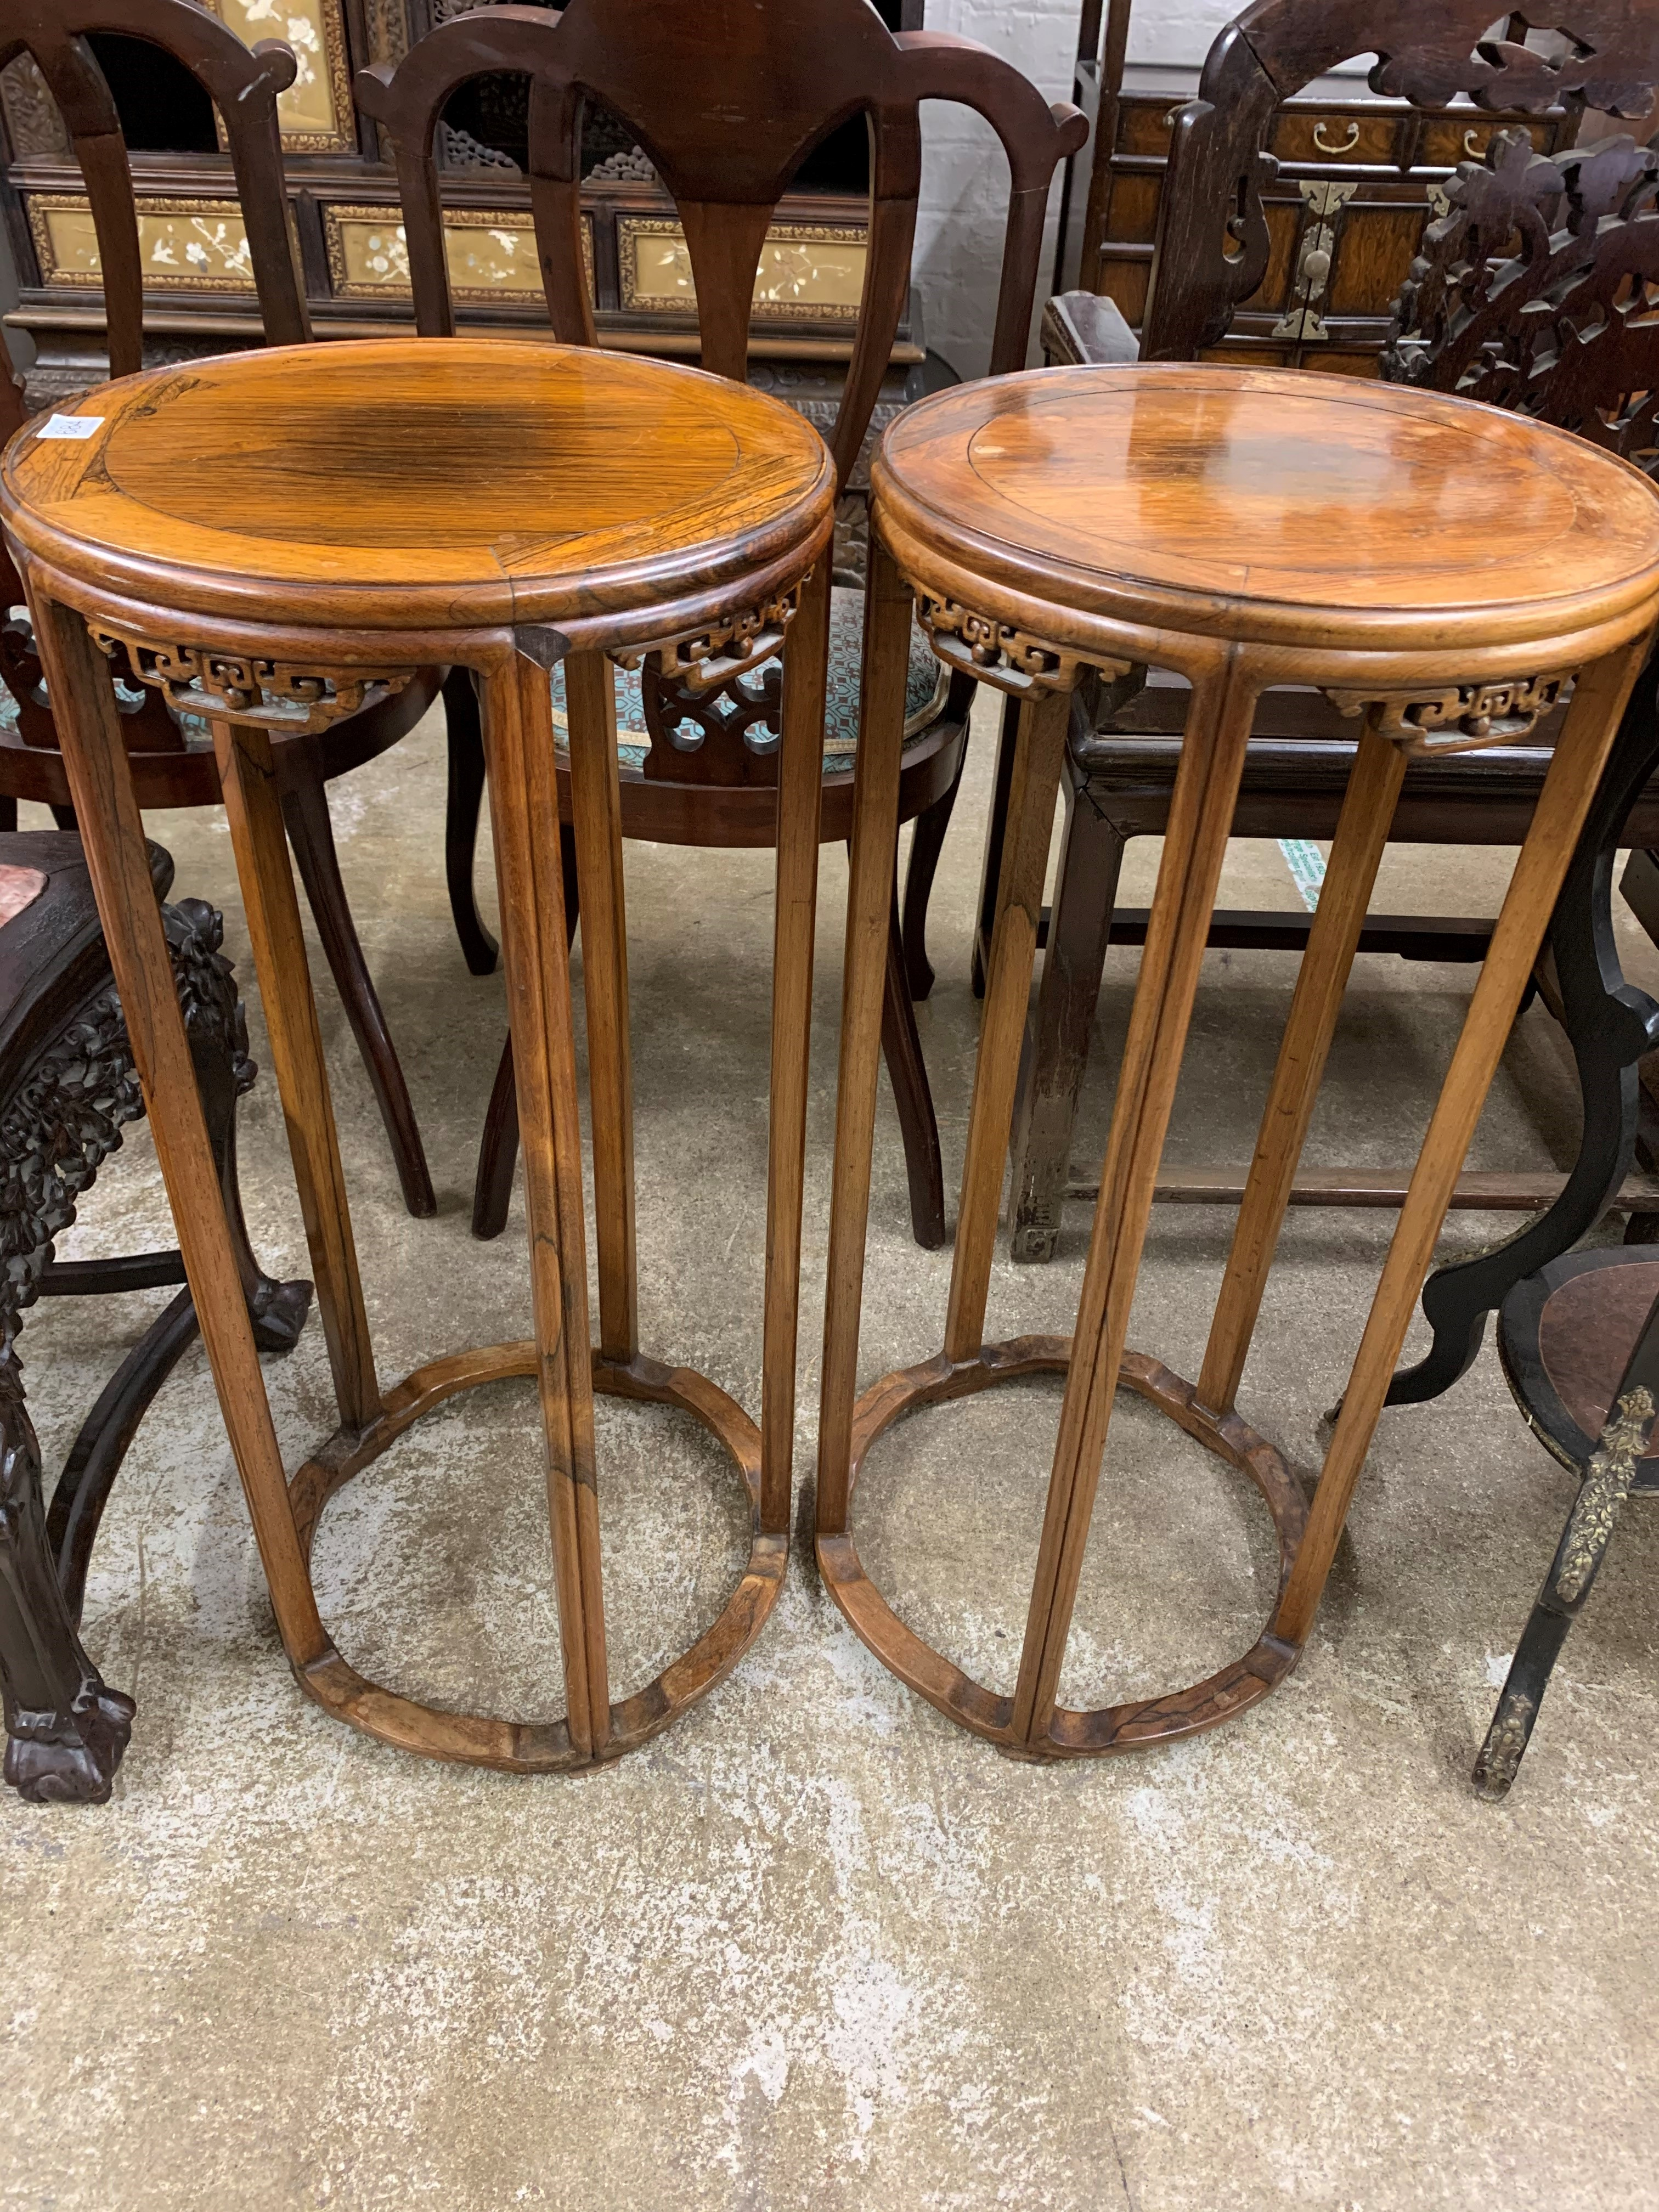 Pair Chinese hardwood jardinière stands, circular tops supported on five legs united by base - Image 3 of 8